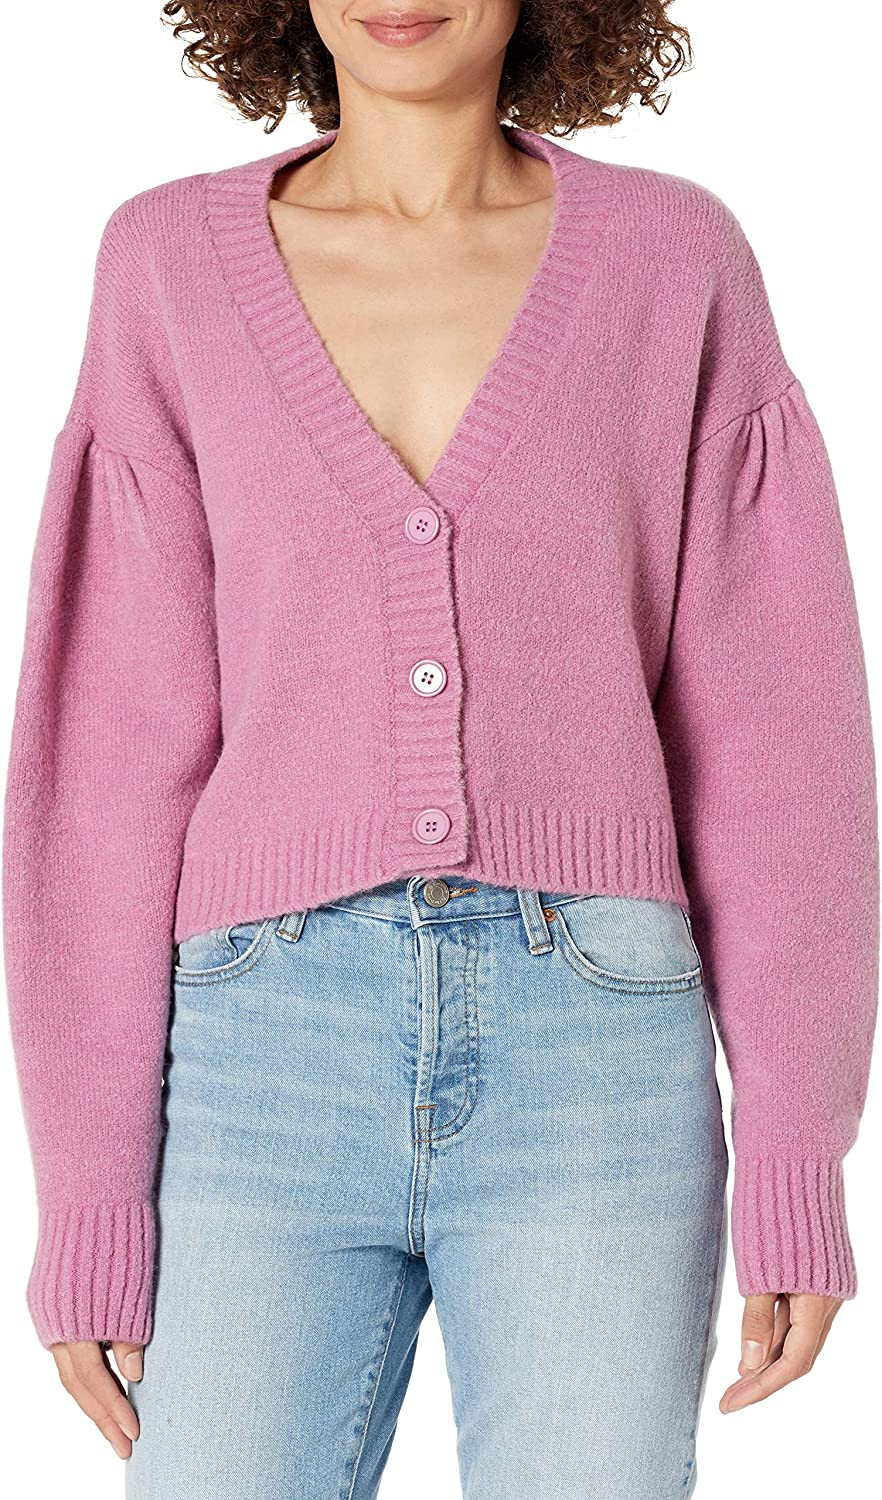 KENDALL + KYLIE Women's Cropped Cardigan